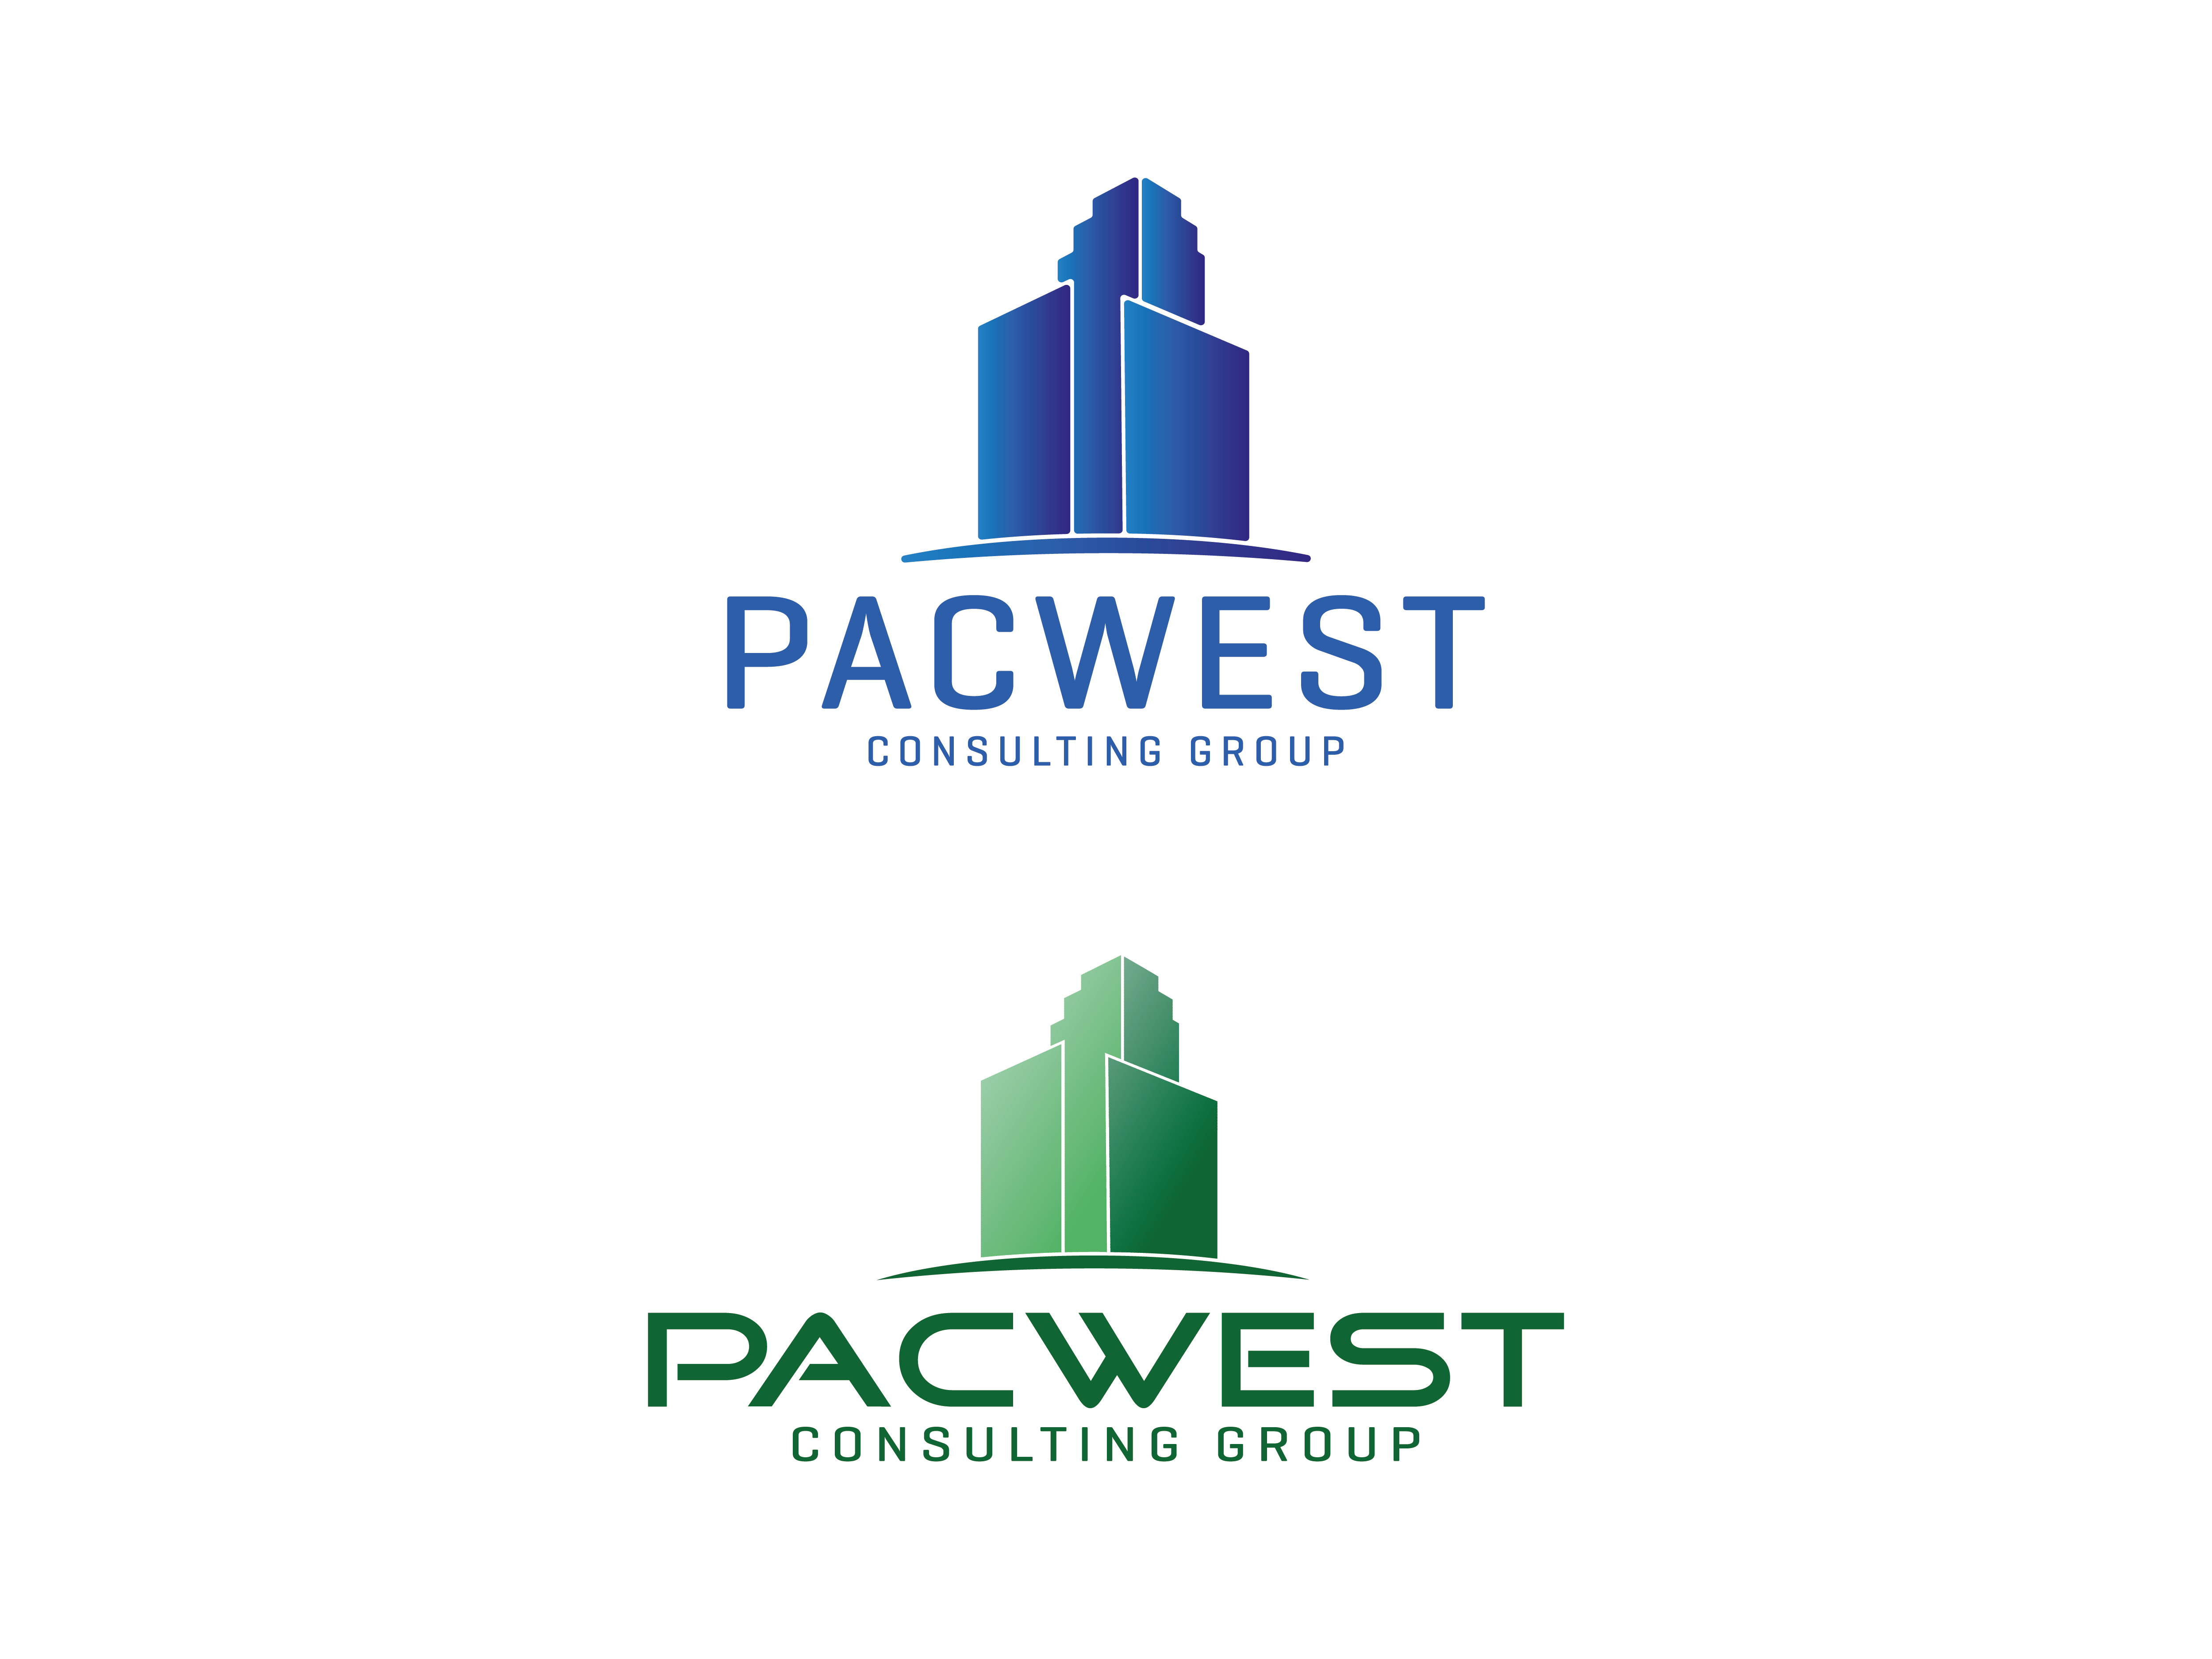 Logo Design by Evo-design - Entry No. 81 in the Logo Design Contest Imaginative Logo Design for Pacwest Consulting Group.